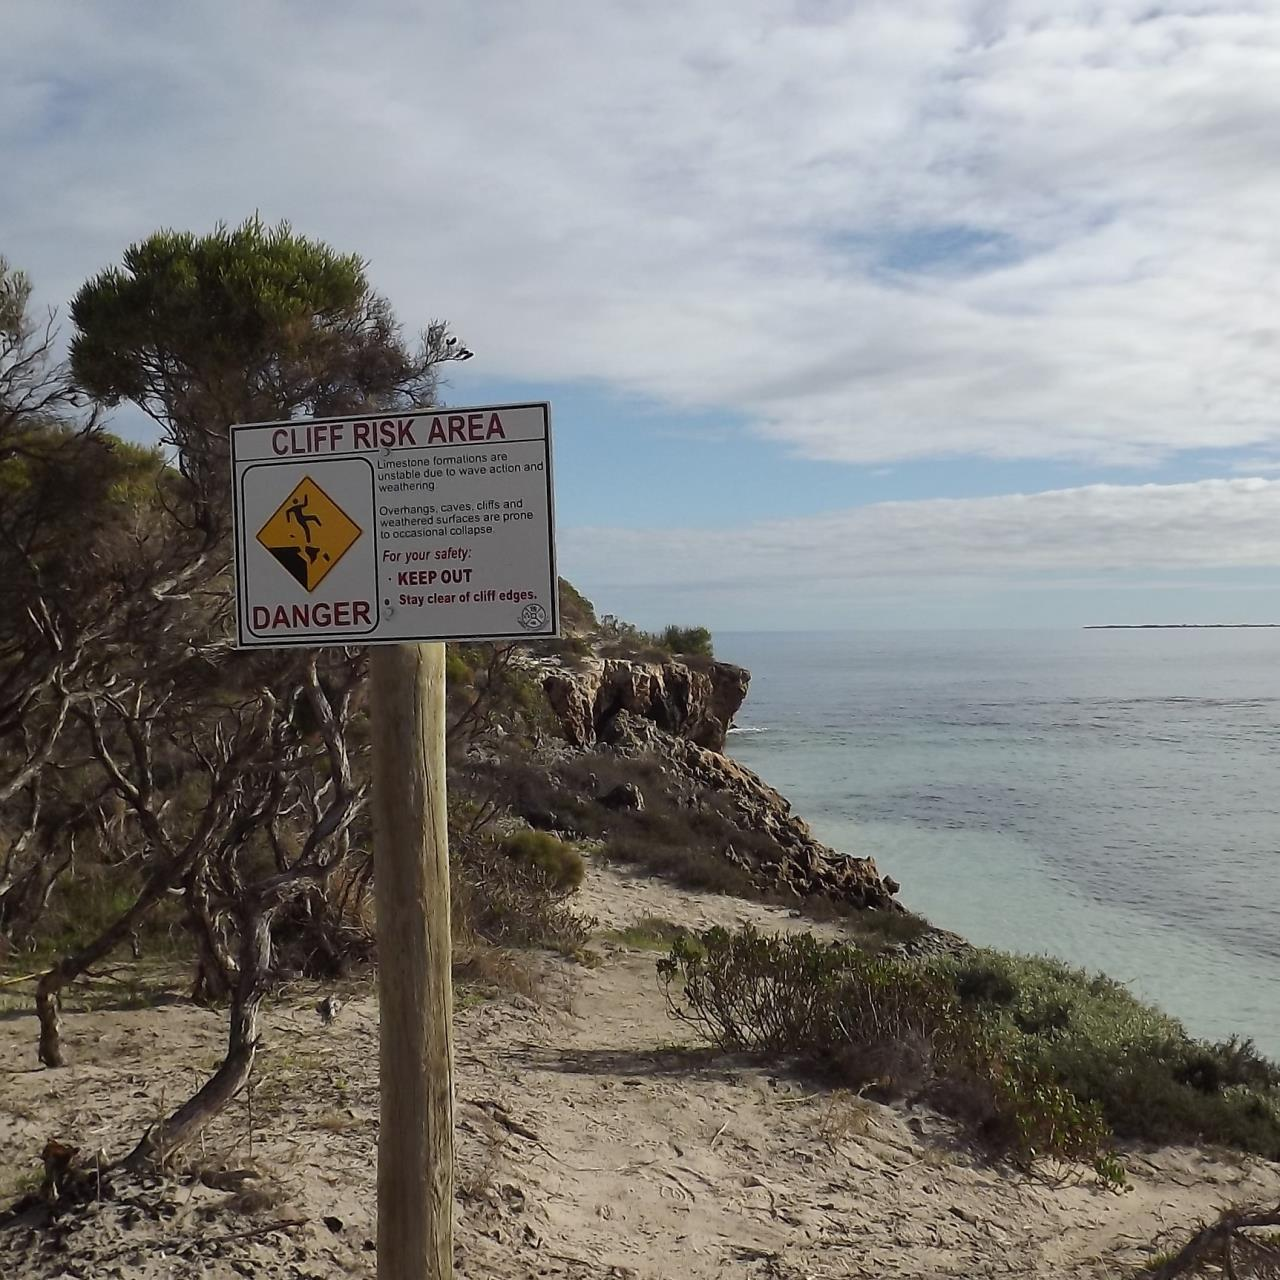 CLIFF RISK AREA SIGNAGE INSTALLED AT SANDY CAPE